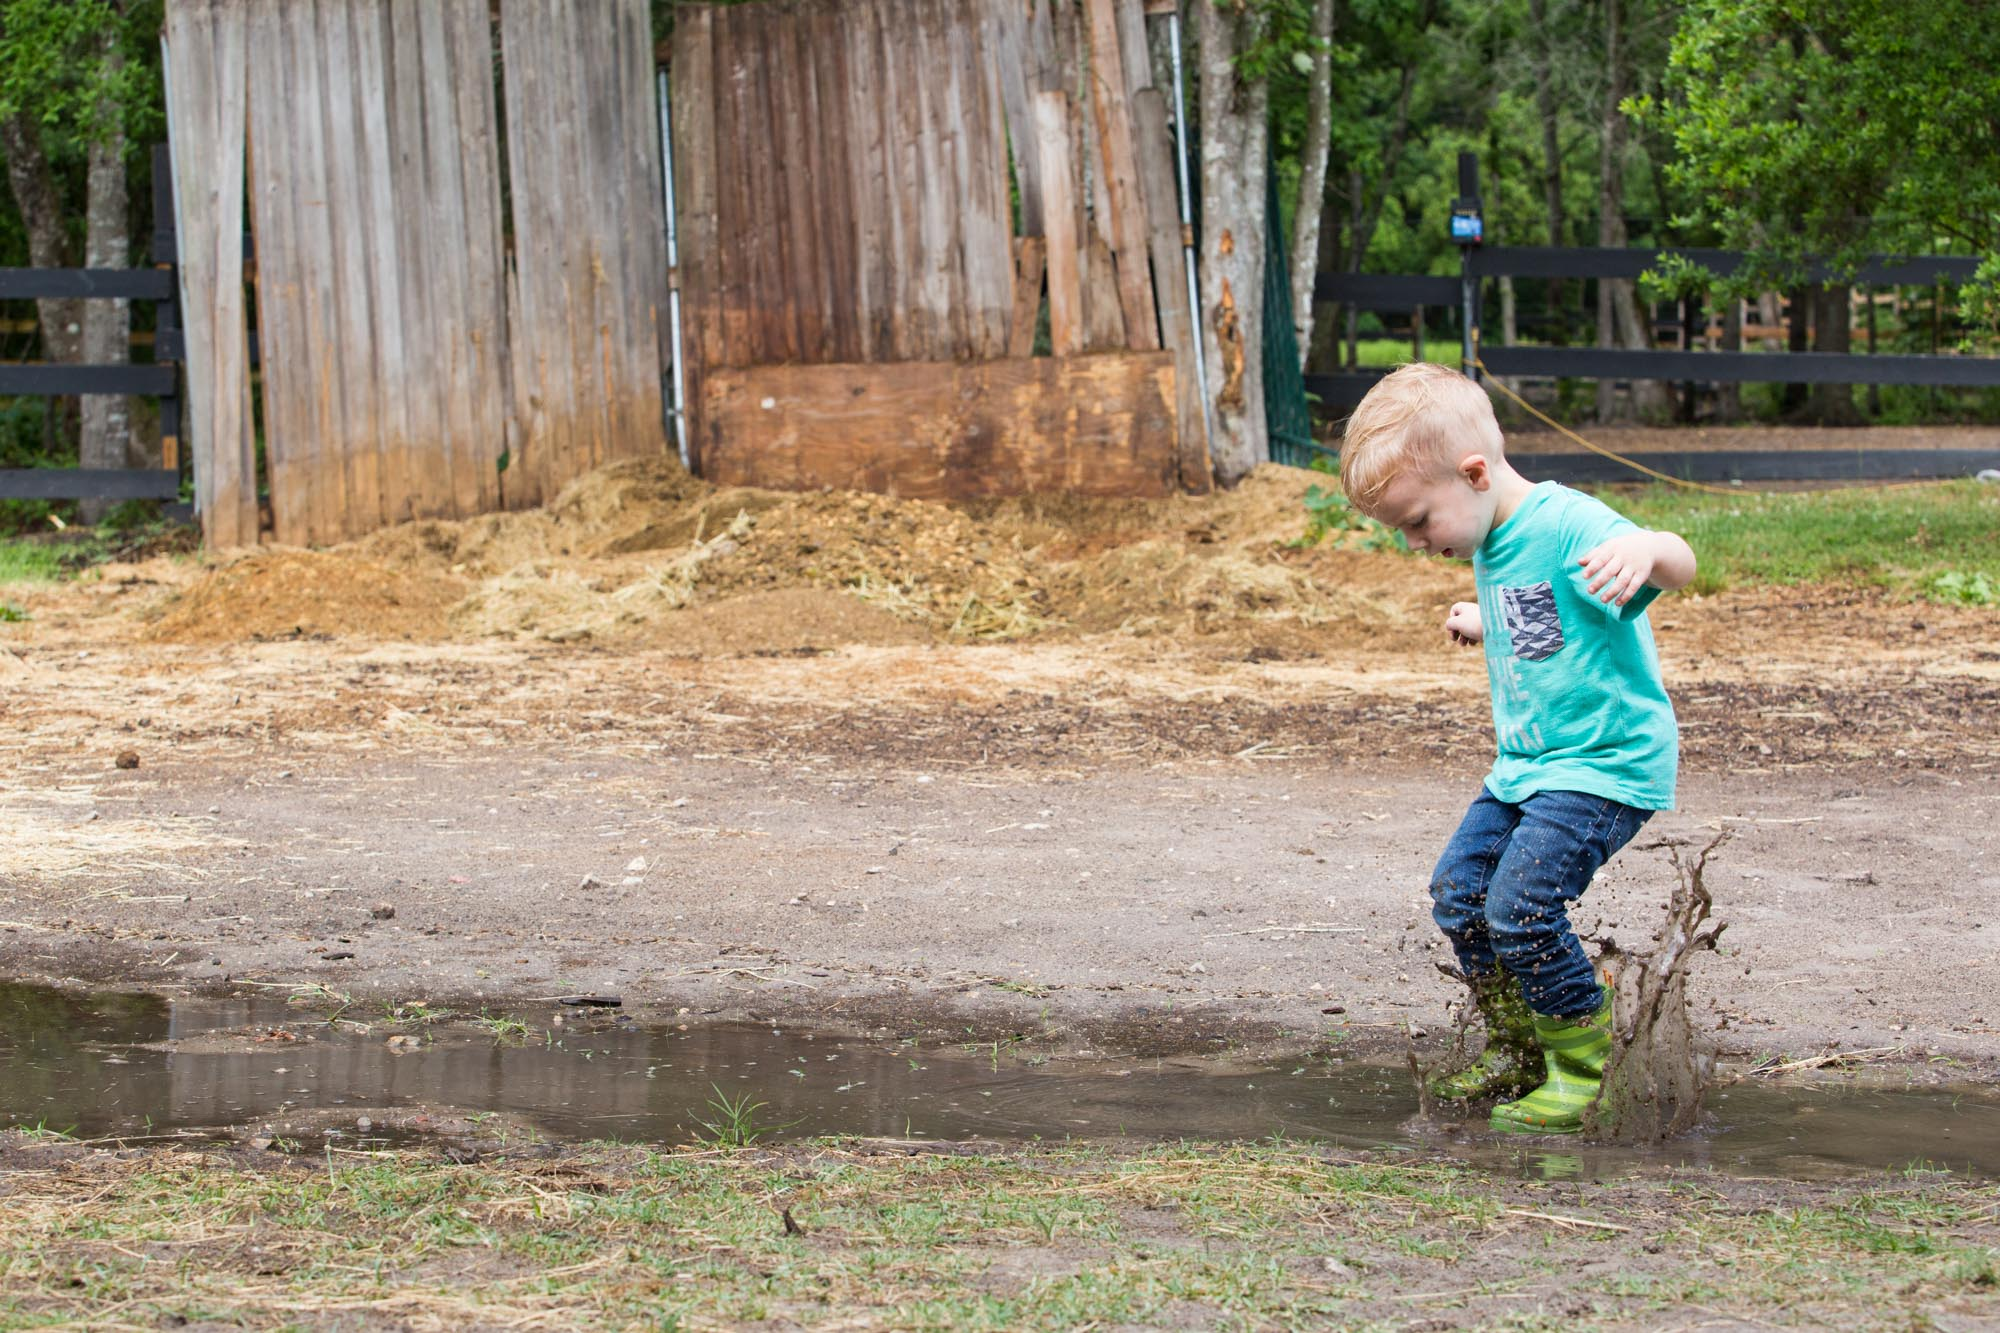 boy jumping in mud puddle